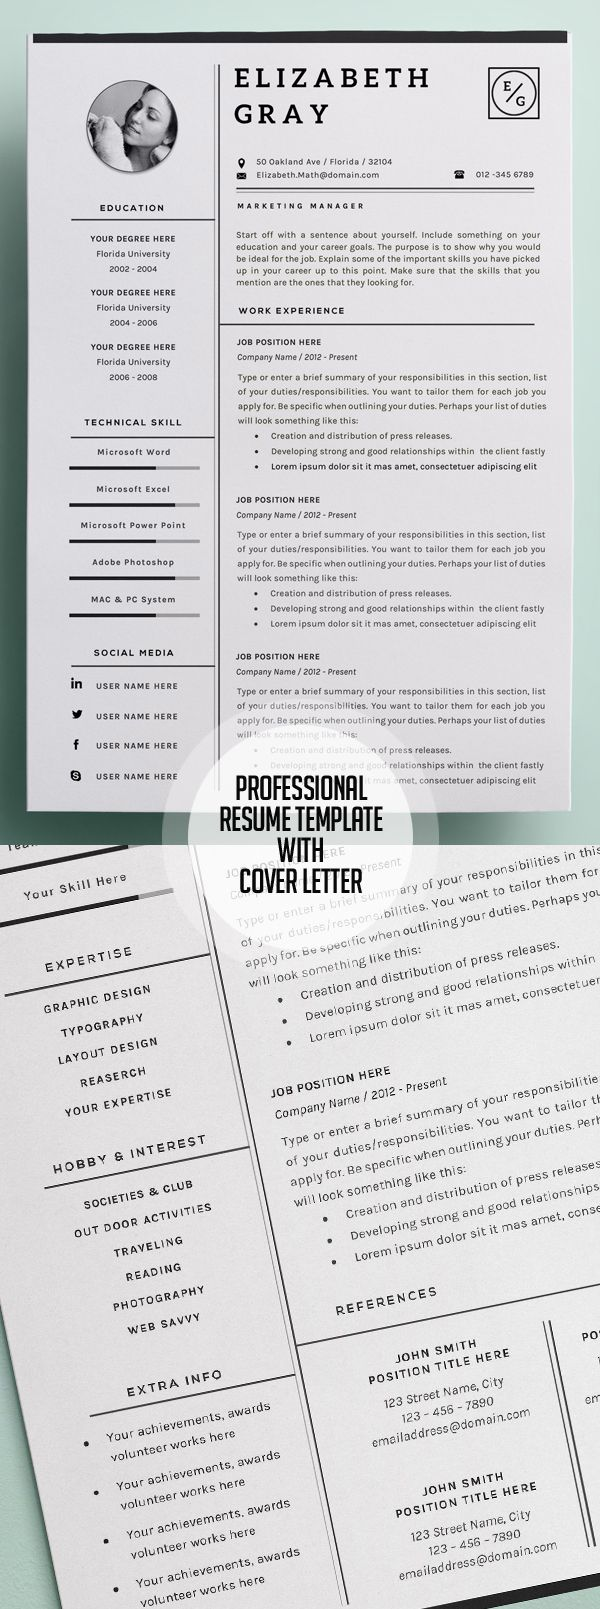 Picnictoimpeachus  Winning  Resume Ideas On Pinterest  Resume Resume Templates And  With Goodlooking Professional And Modern Resume Template With Page Cover Cvtemplate With Captivating Hospitality Resume Examples Also Call Center Resumes In Addition Psychiatric Nurse Resume And Eagle Scout Resume As Well As How To Make A Resume No Experience Additionally Free Executive Resume Templates From Pinterestcom With Picnictoimpeachus  Goodlooking  Resume Ideas On Pinterest  Resume Resume Templates And  With Captivating Professional And Modern Resume Template With Page Cover Cvtemplate And Winning Hospitality Resume Examples Also Call Center Resumes In Addition Psychiatric Nurse Resume From Pinterestcom